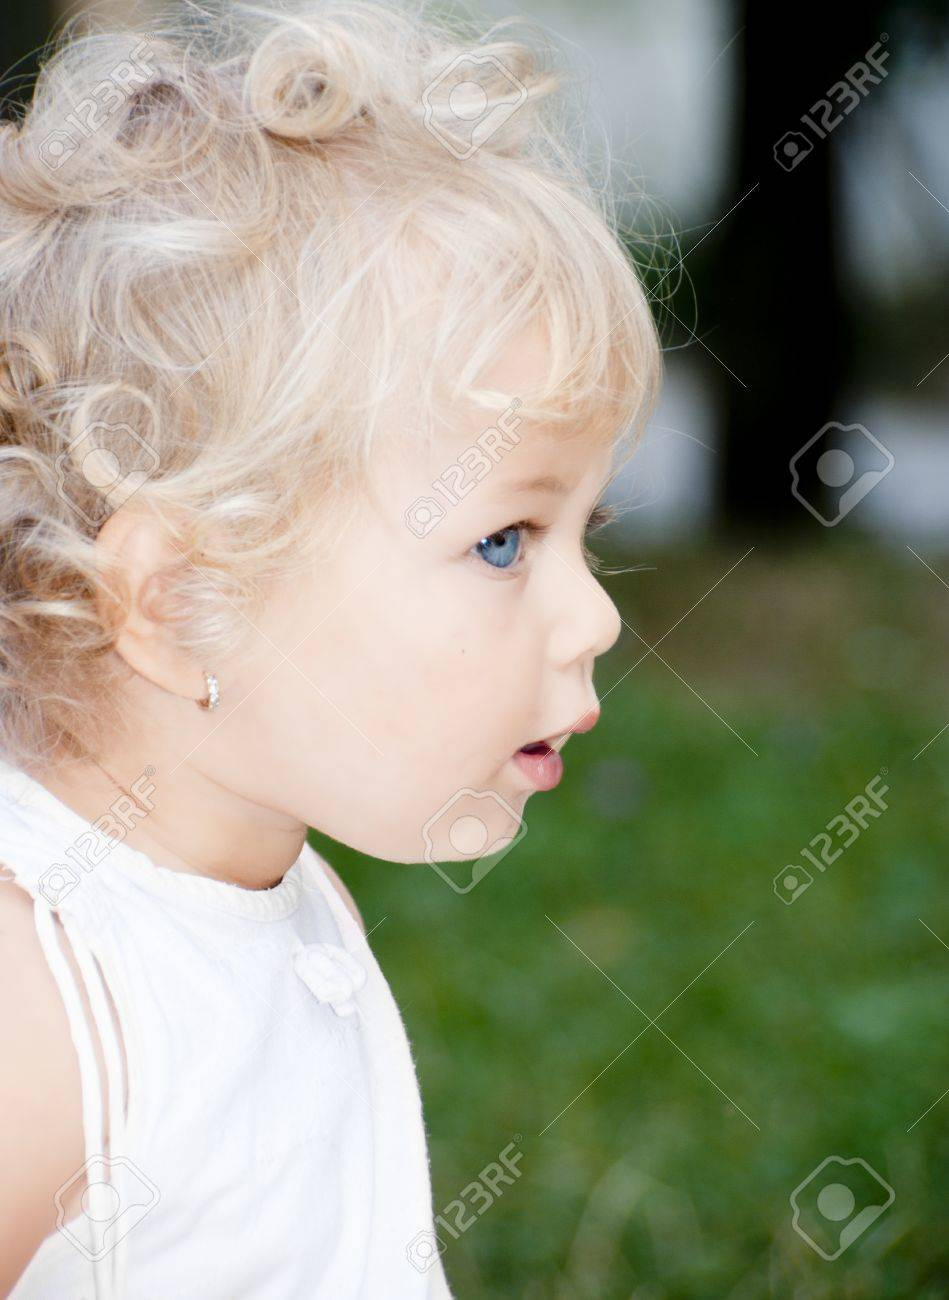 cute blond baby girl with blue eyes stock photo, picture and royalty